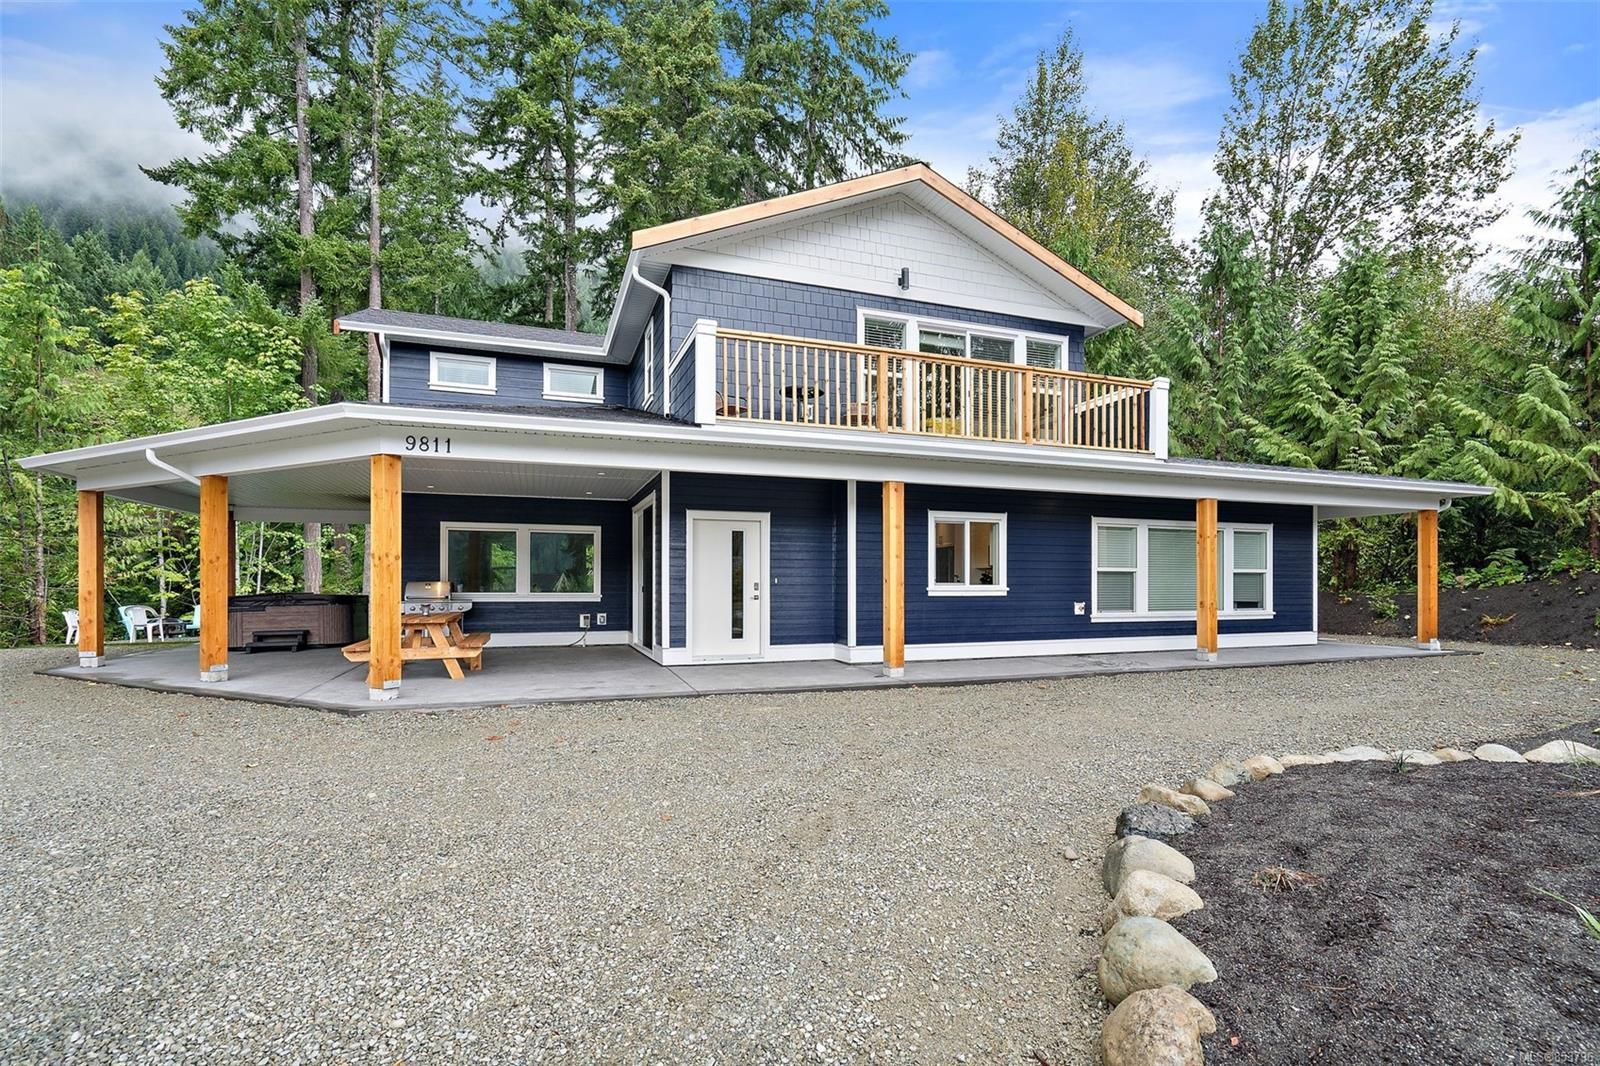 Main Photo: 9811 Miracle Way in : Du Youbou House for sale (Duncan)  : MLS®# 853796